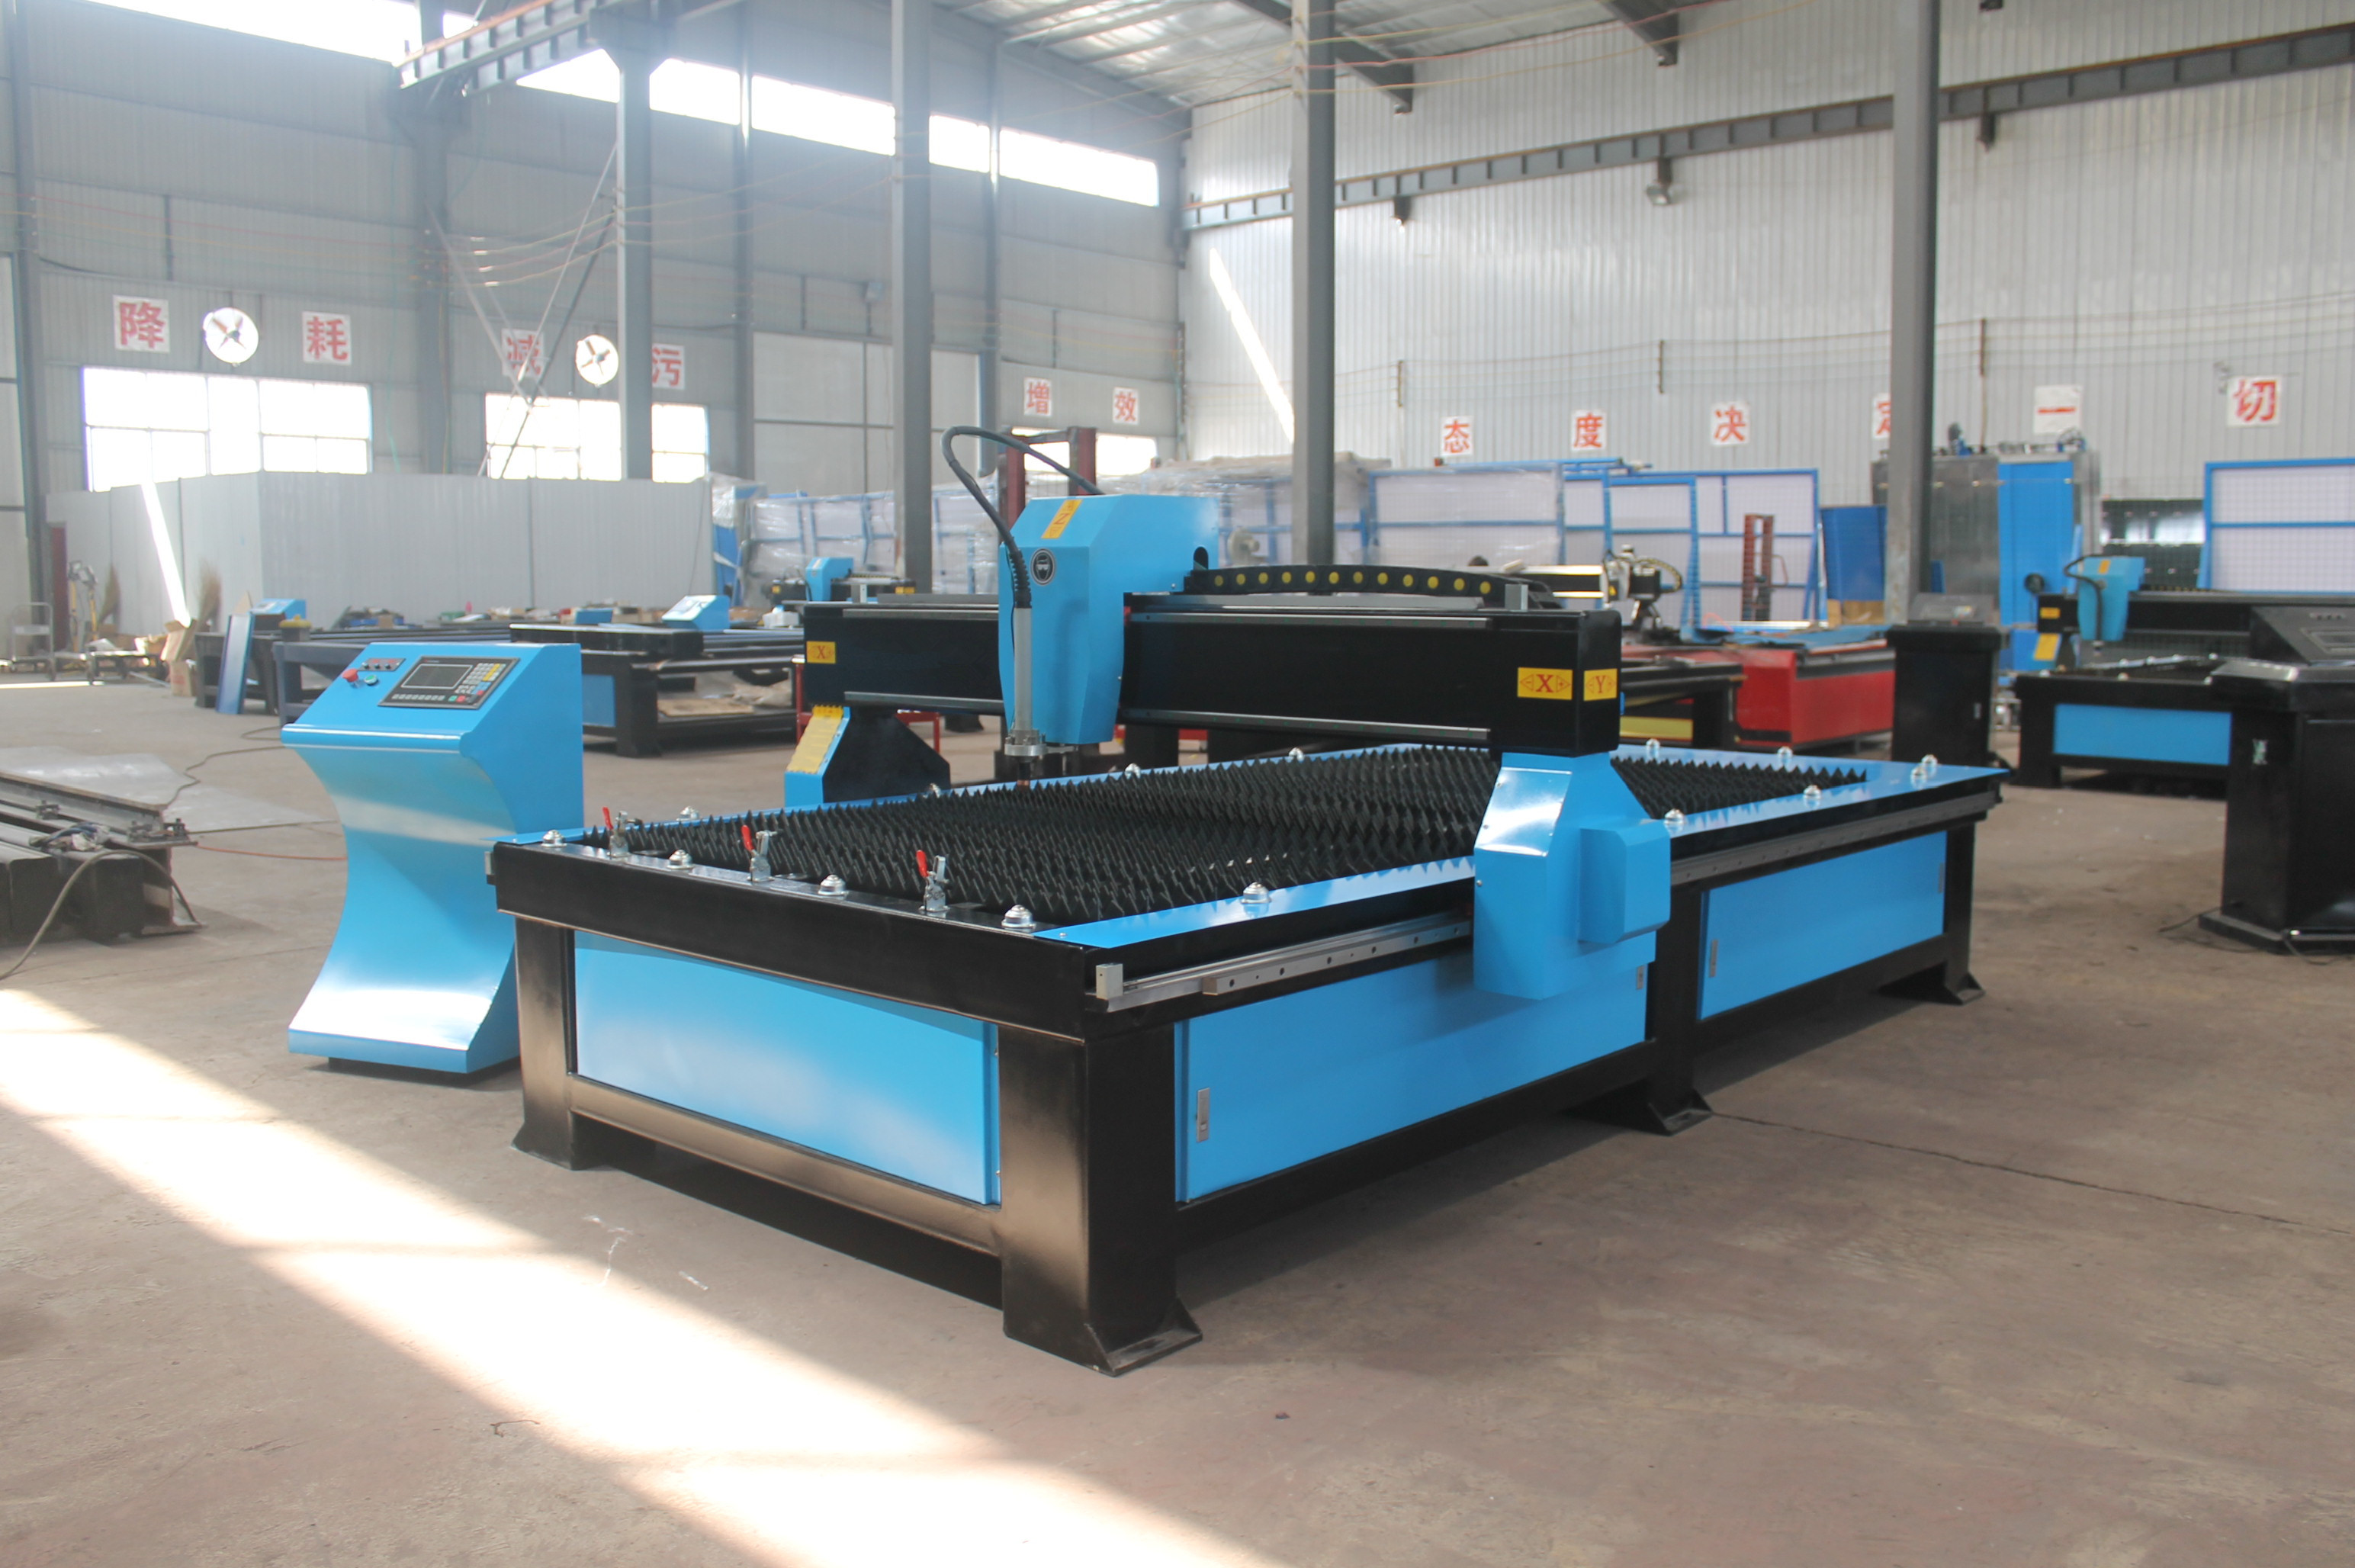 4x8ft CNC Plasma Cutting Table with Affordable Price for Sale